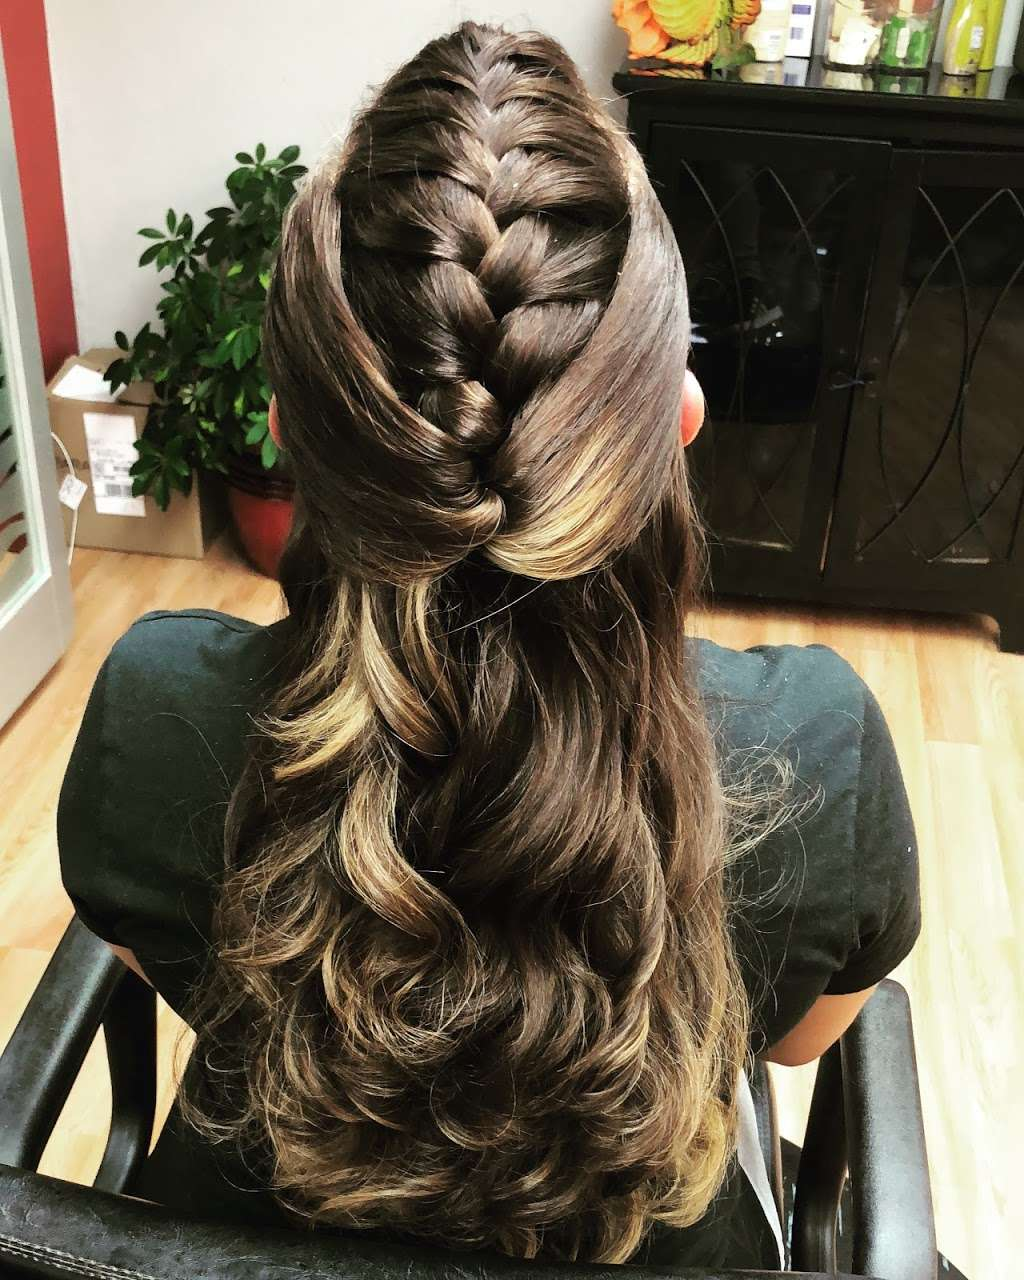 Sophisticut - hair care  | Photo 1 of 8 | Address: 366 Anderson Ave, Cliffside Park, NJ 07010, USA | Phone: (201) 941-3946